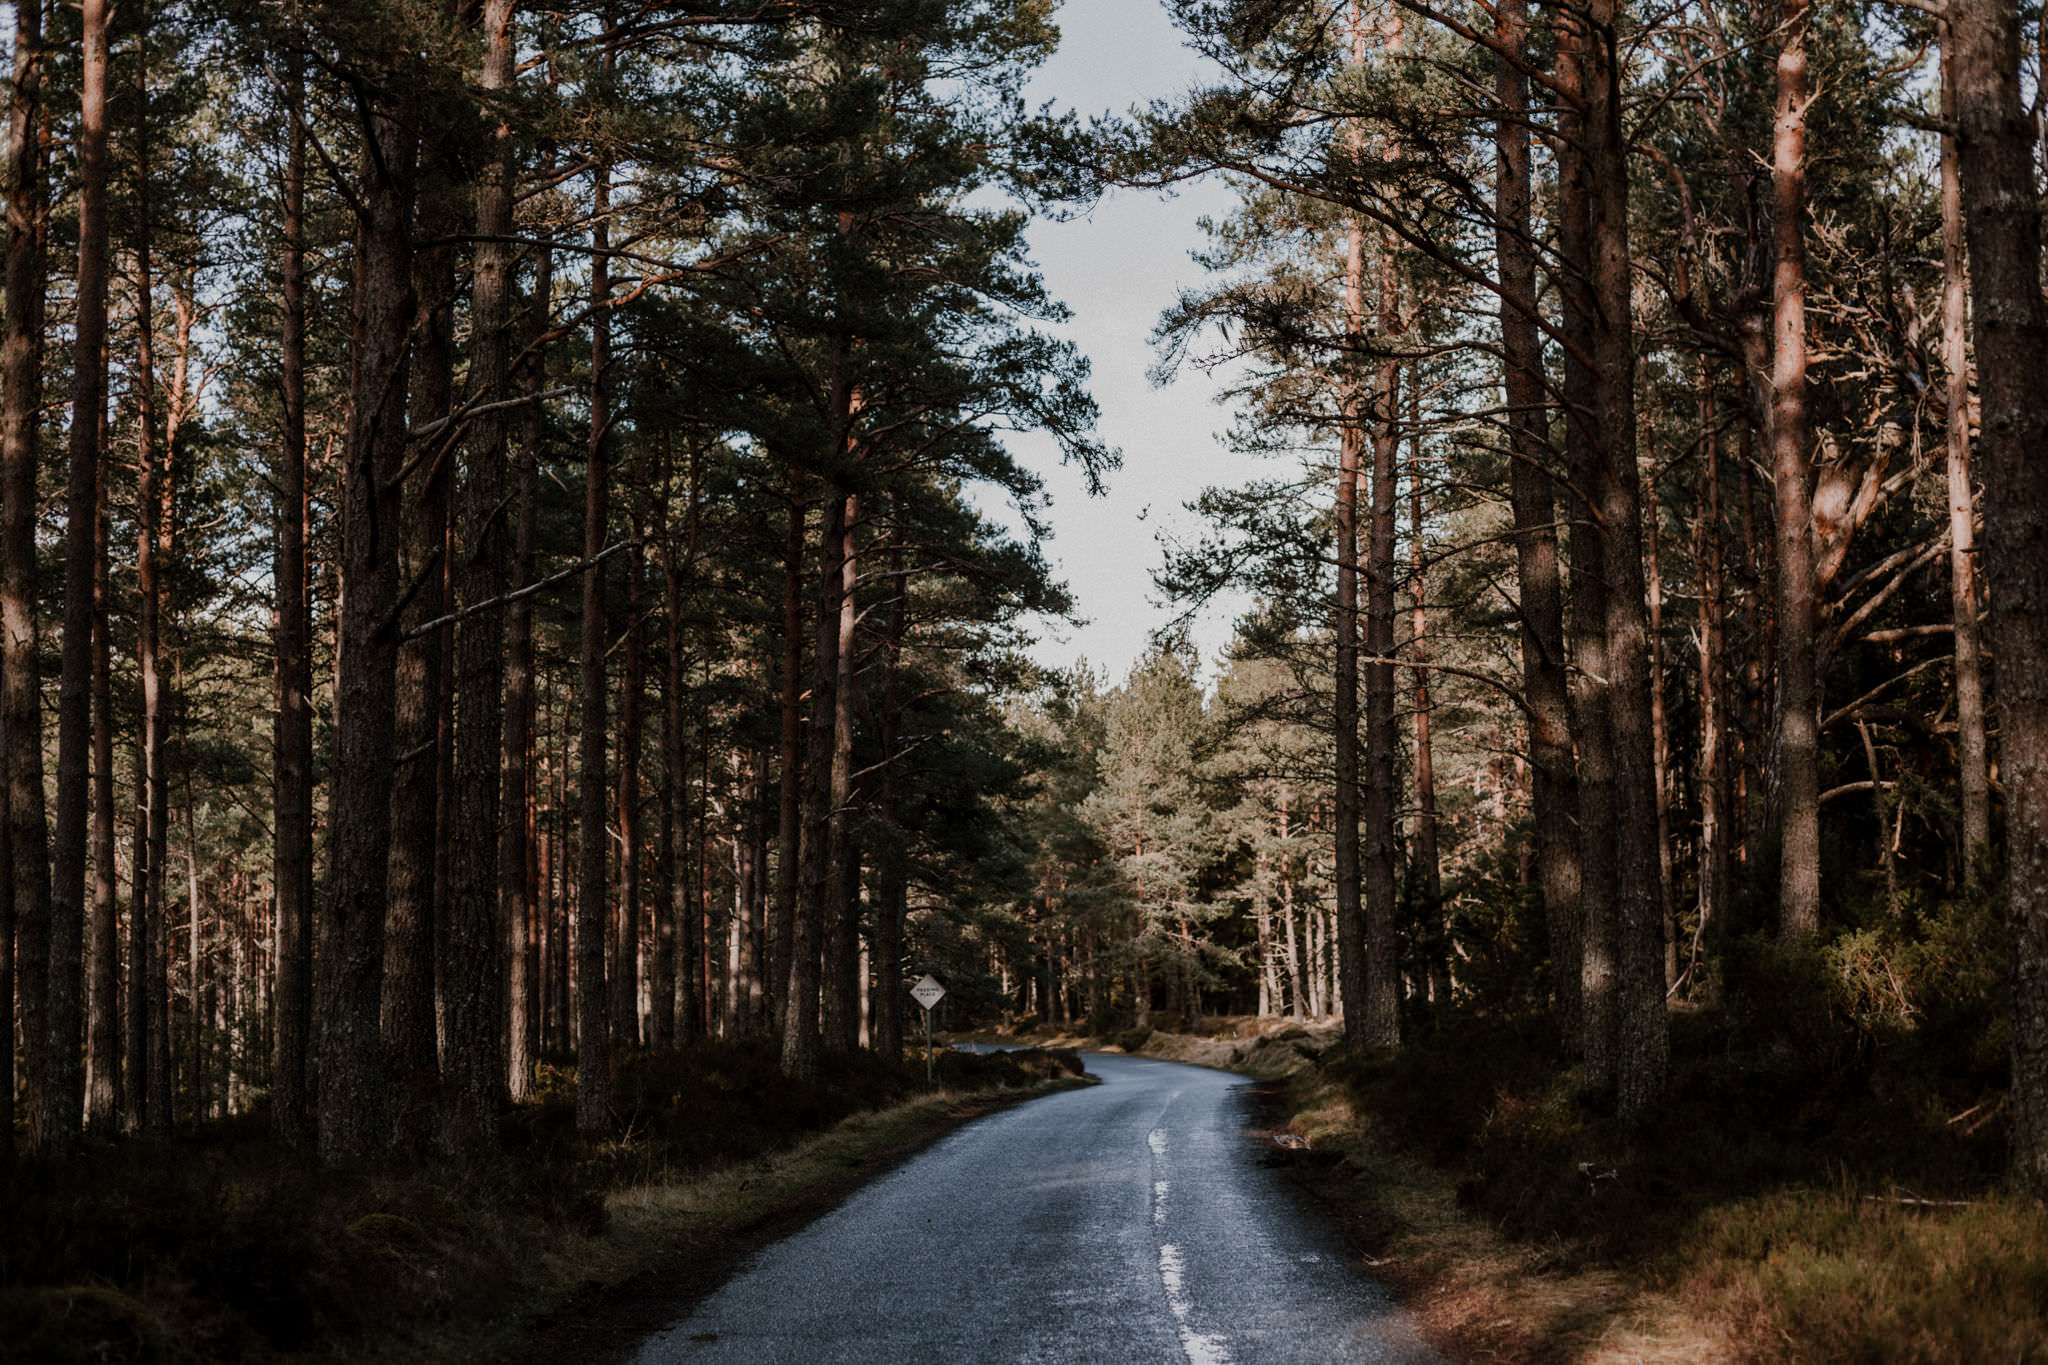 Road running through pine forest in Cairngorms National Park